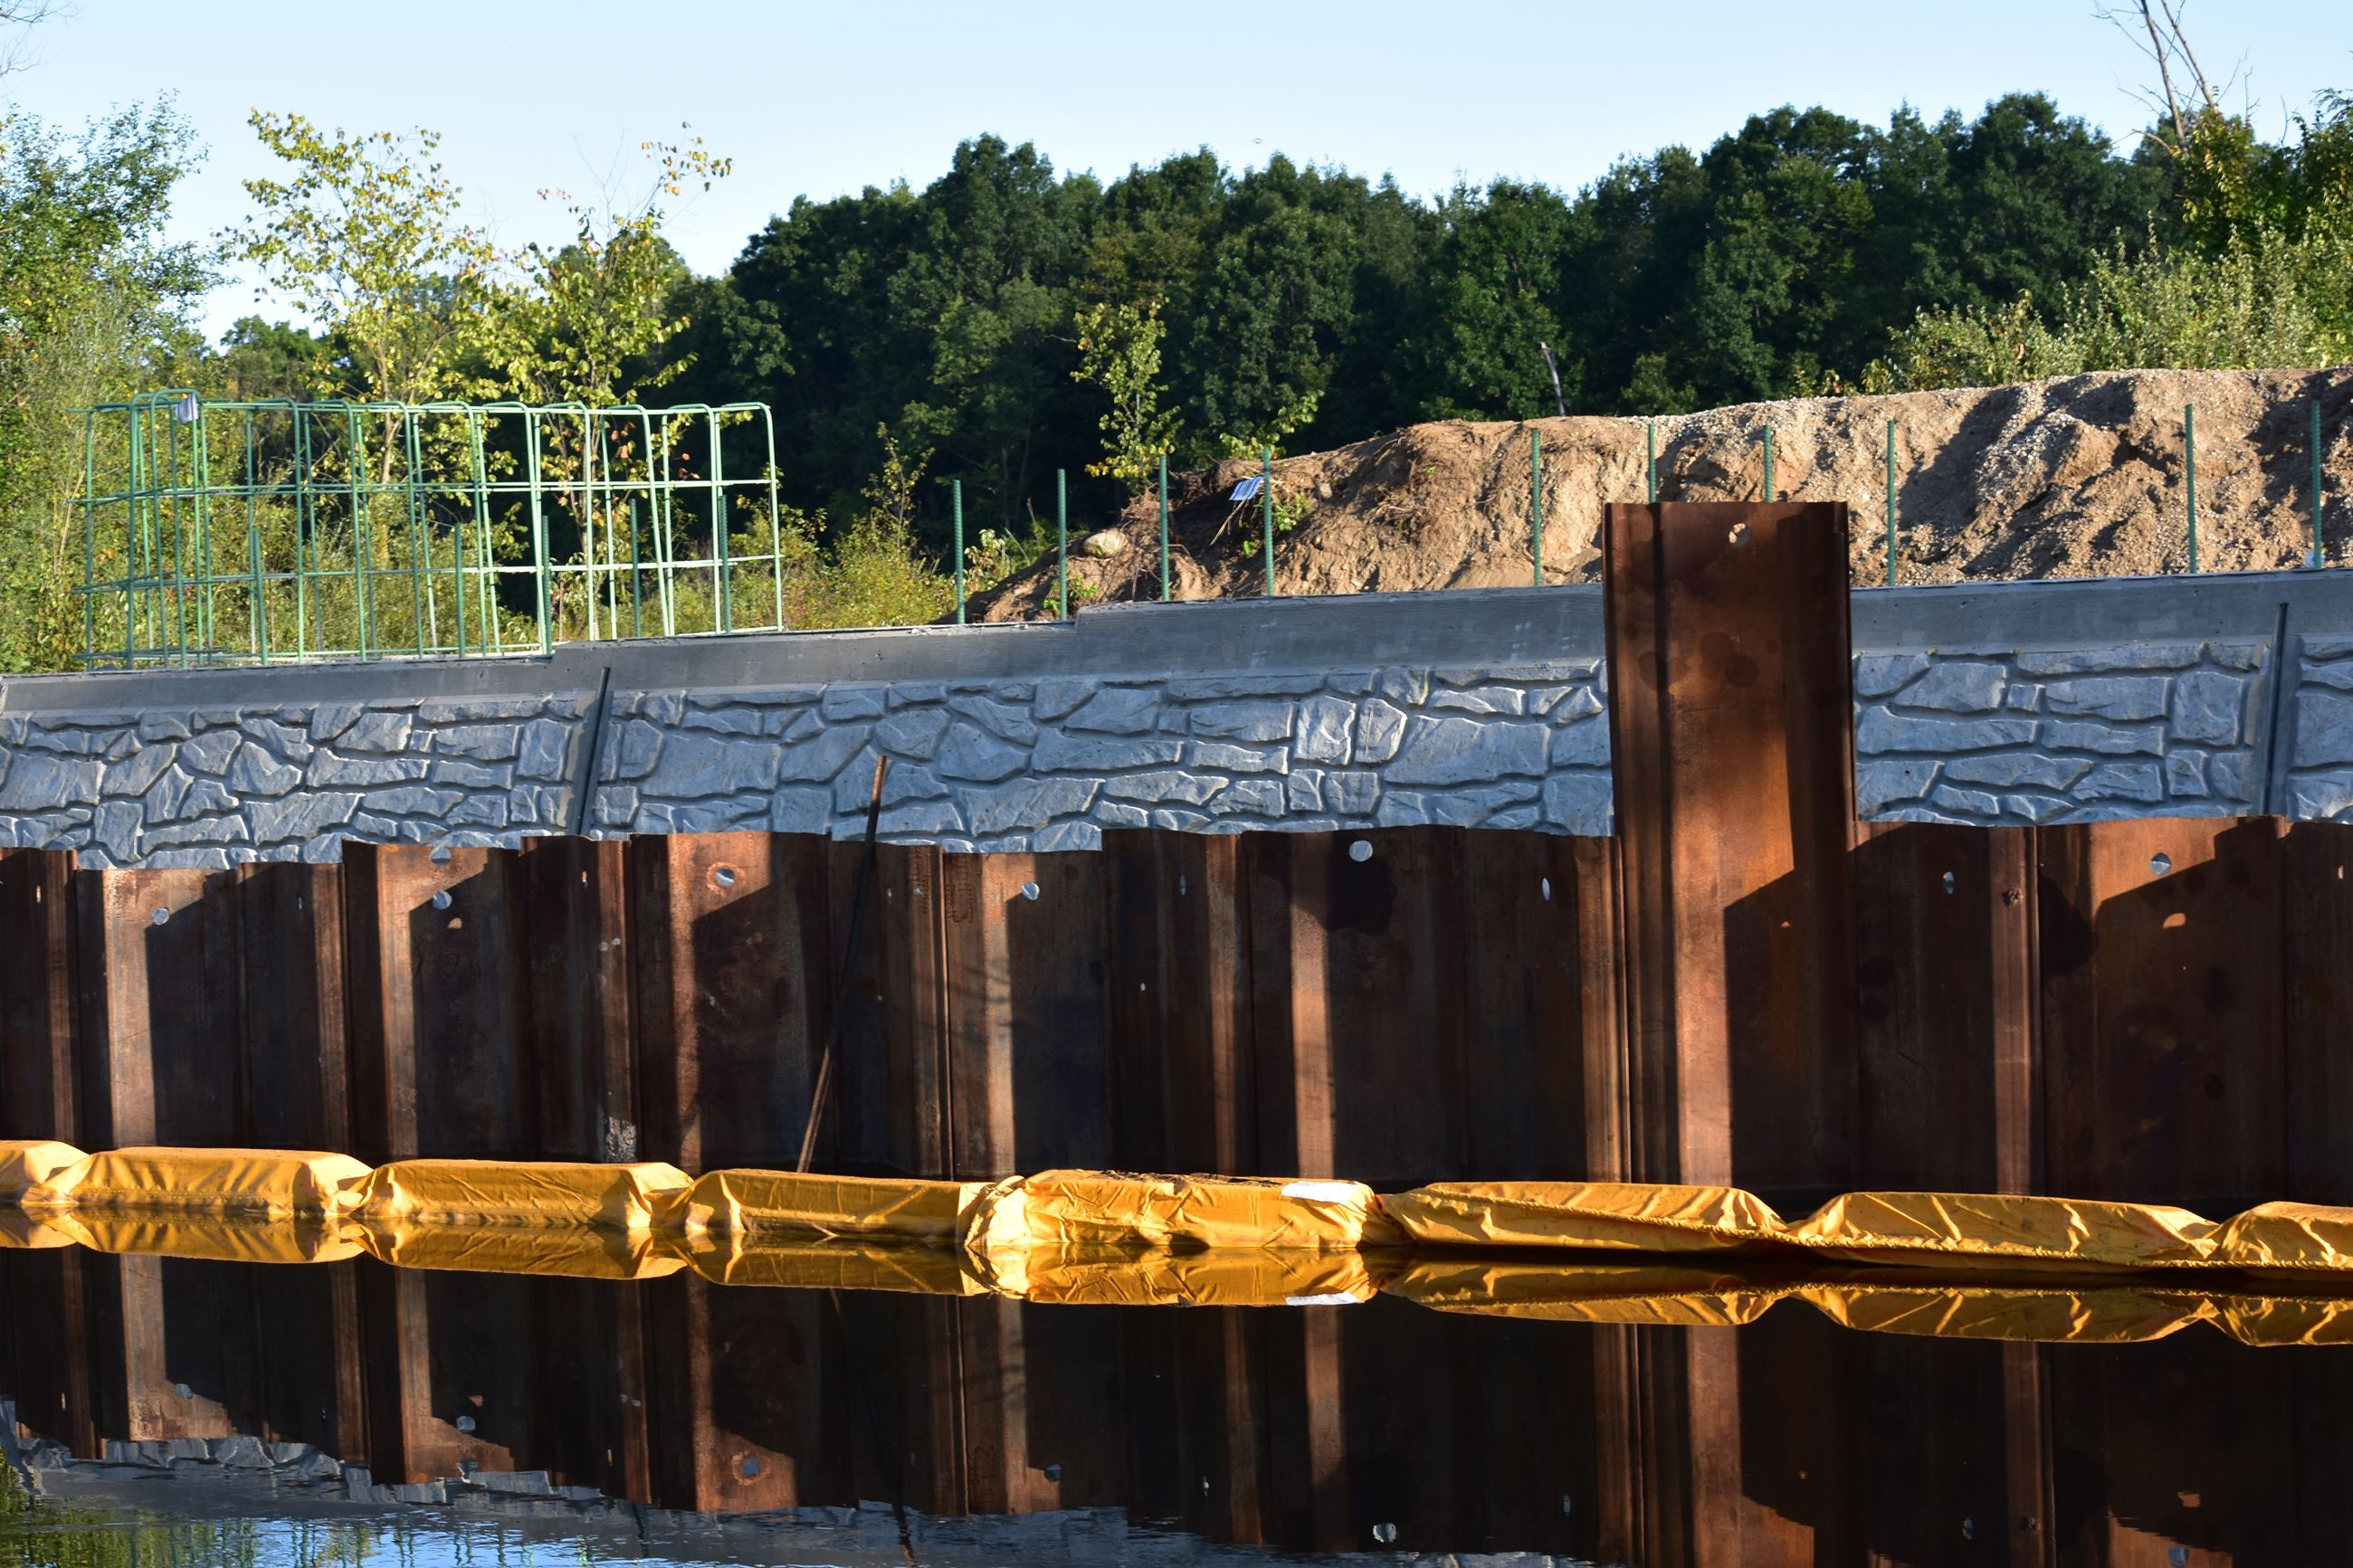 Wixom Road bridge north abutment with stone pattern